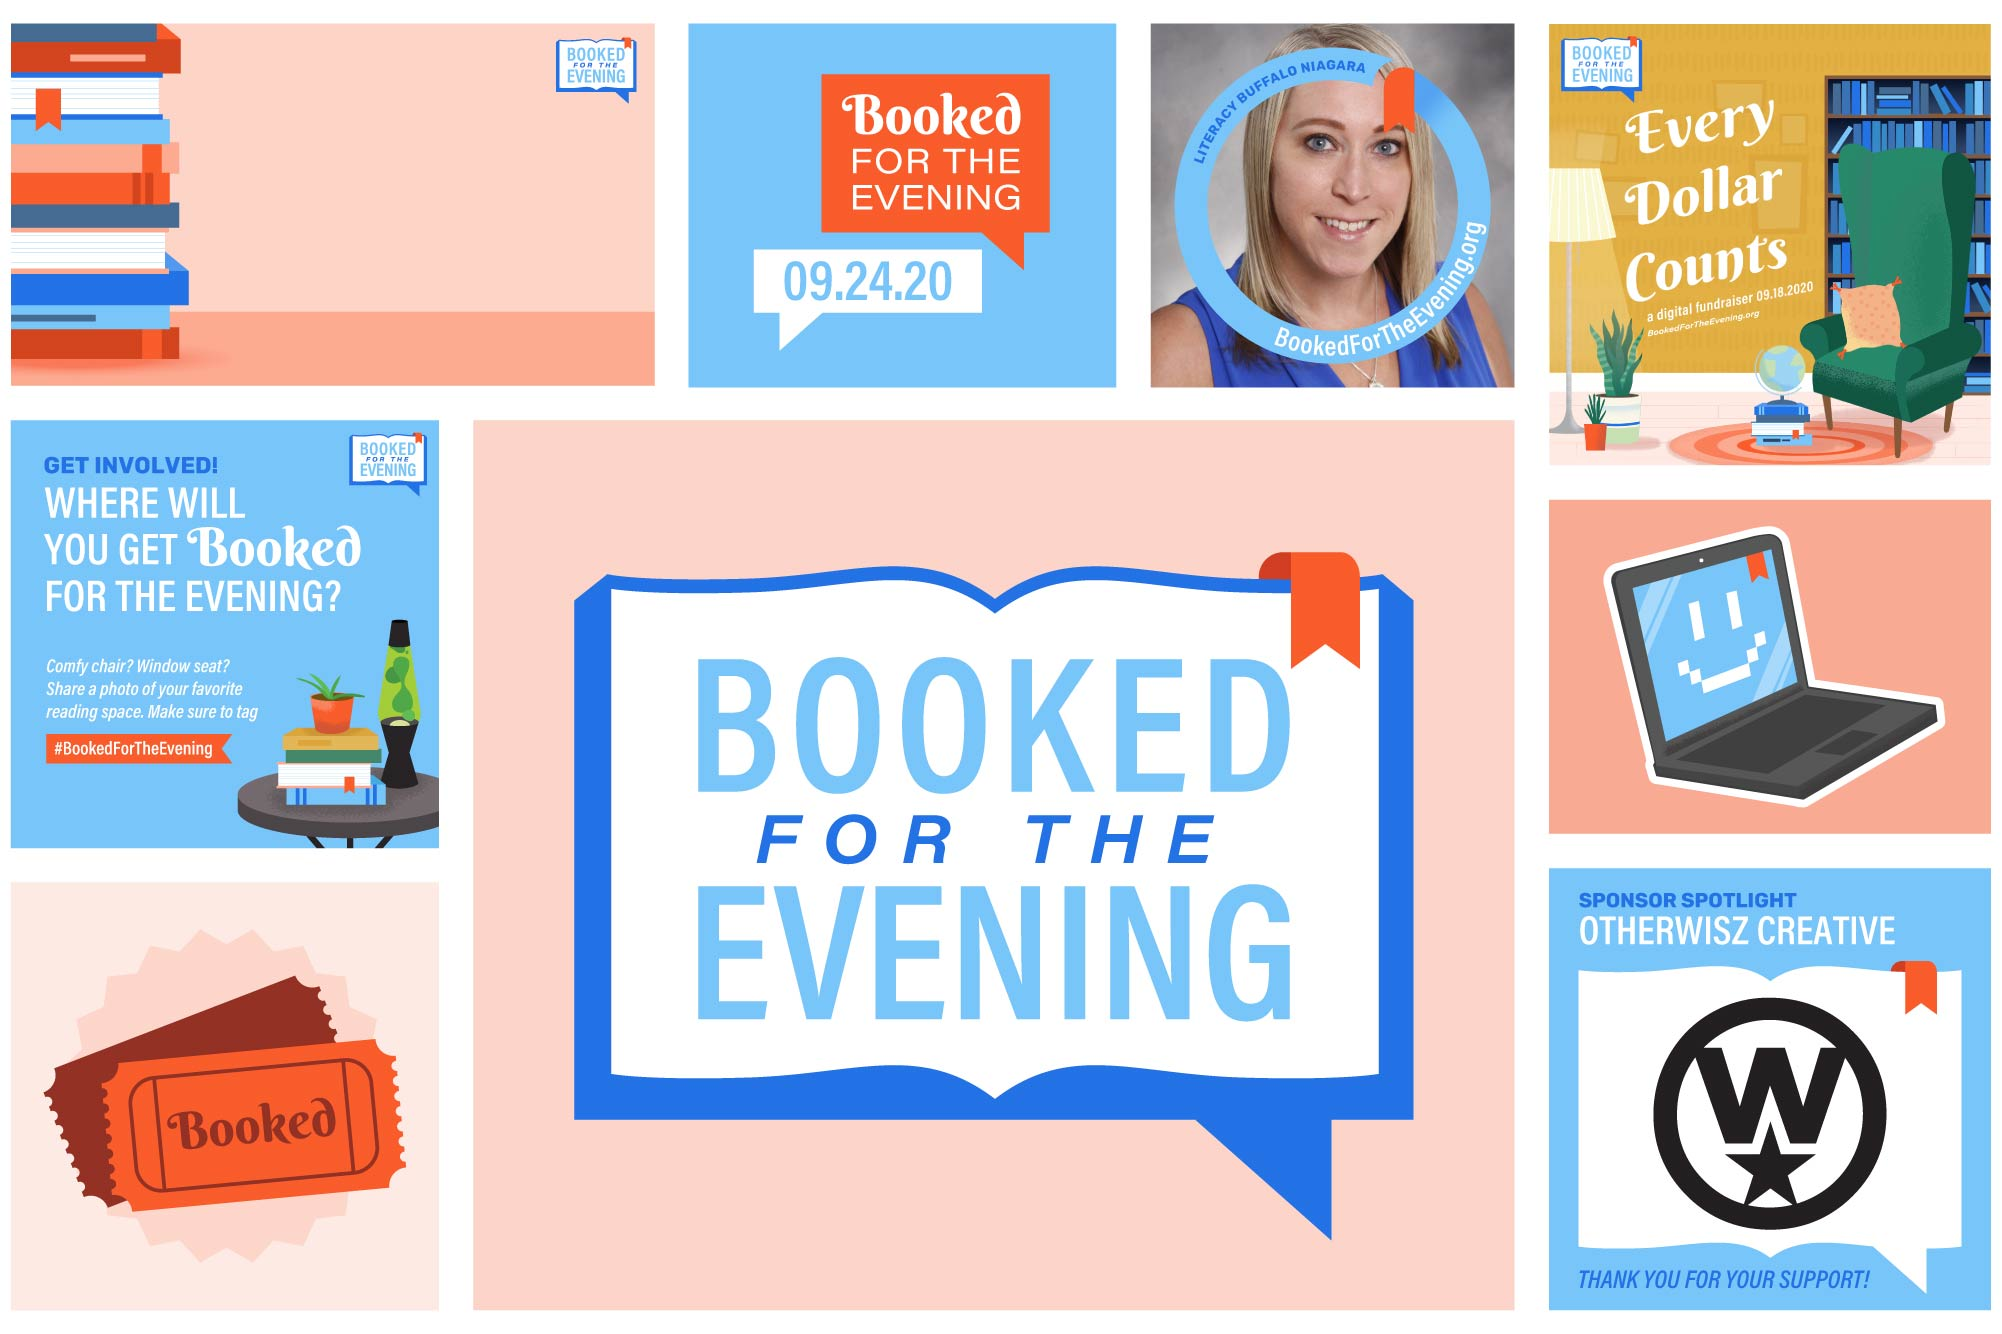 OtherWisz designed an extensive package of digital assets for Booked, including profile frames, Zoom backgrounds, sponsor graphics, and GIF stickers.